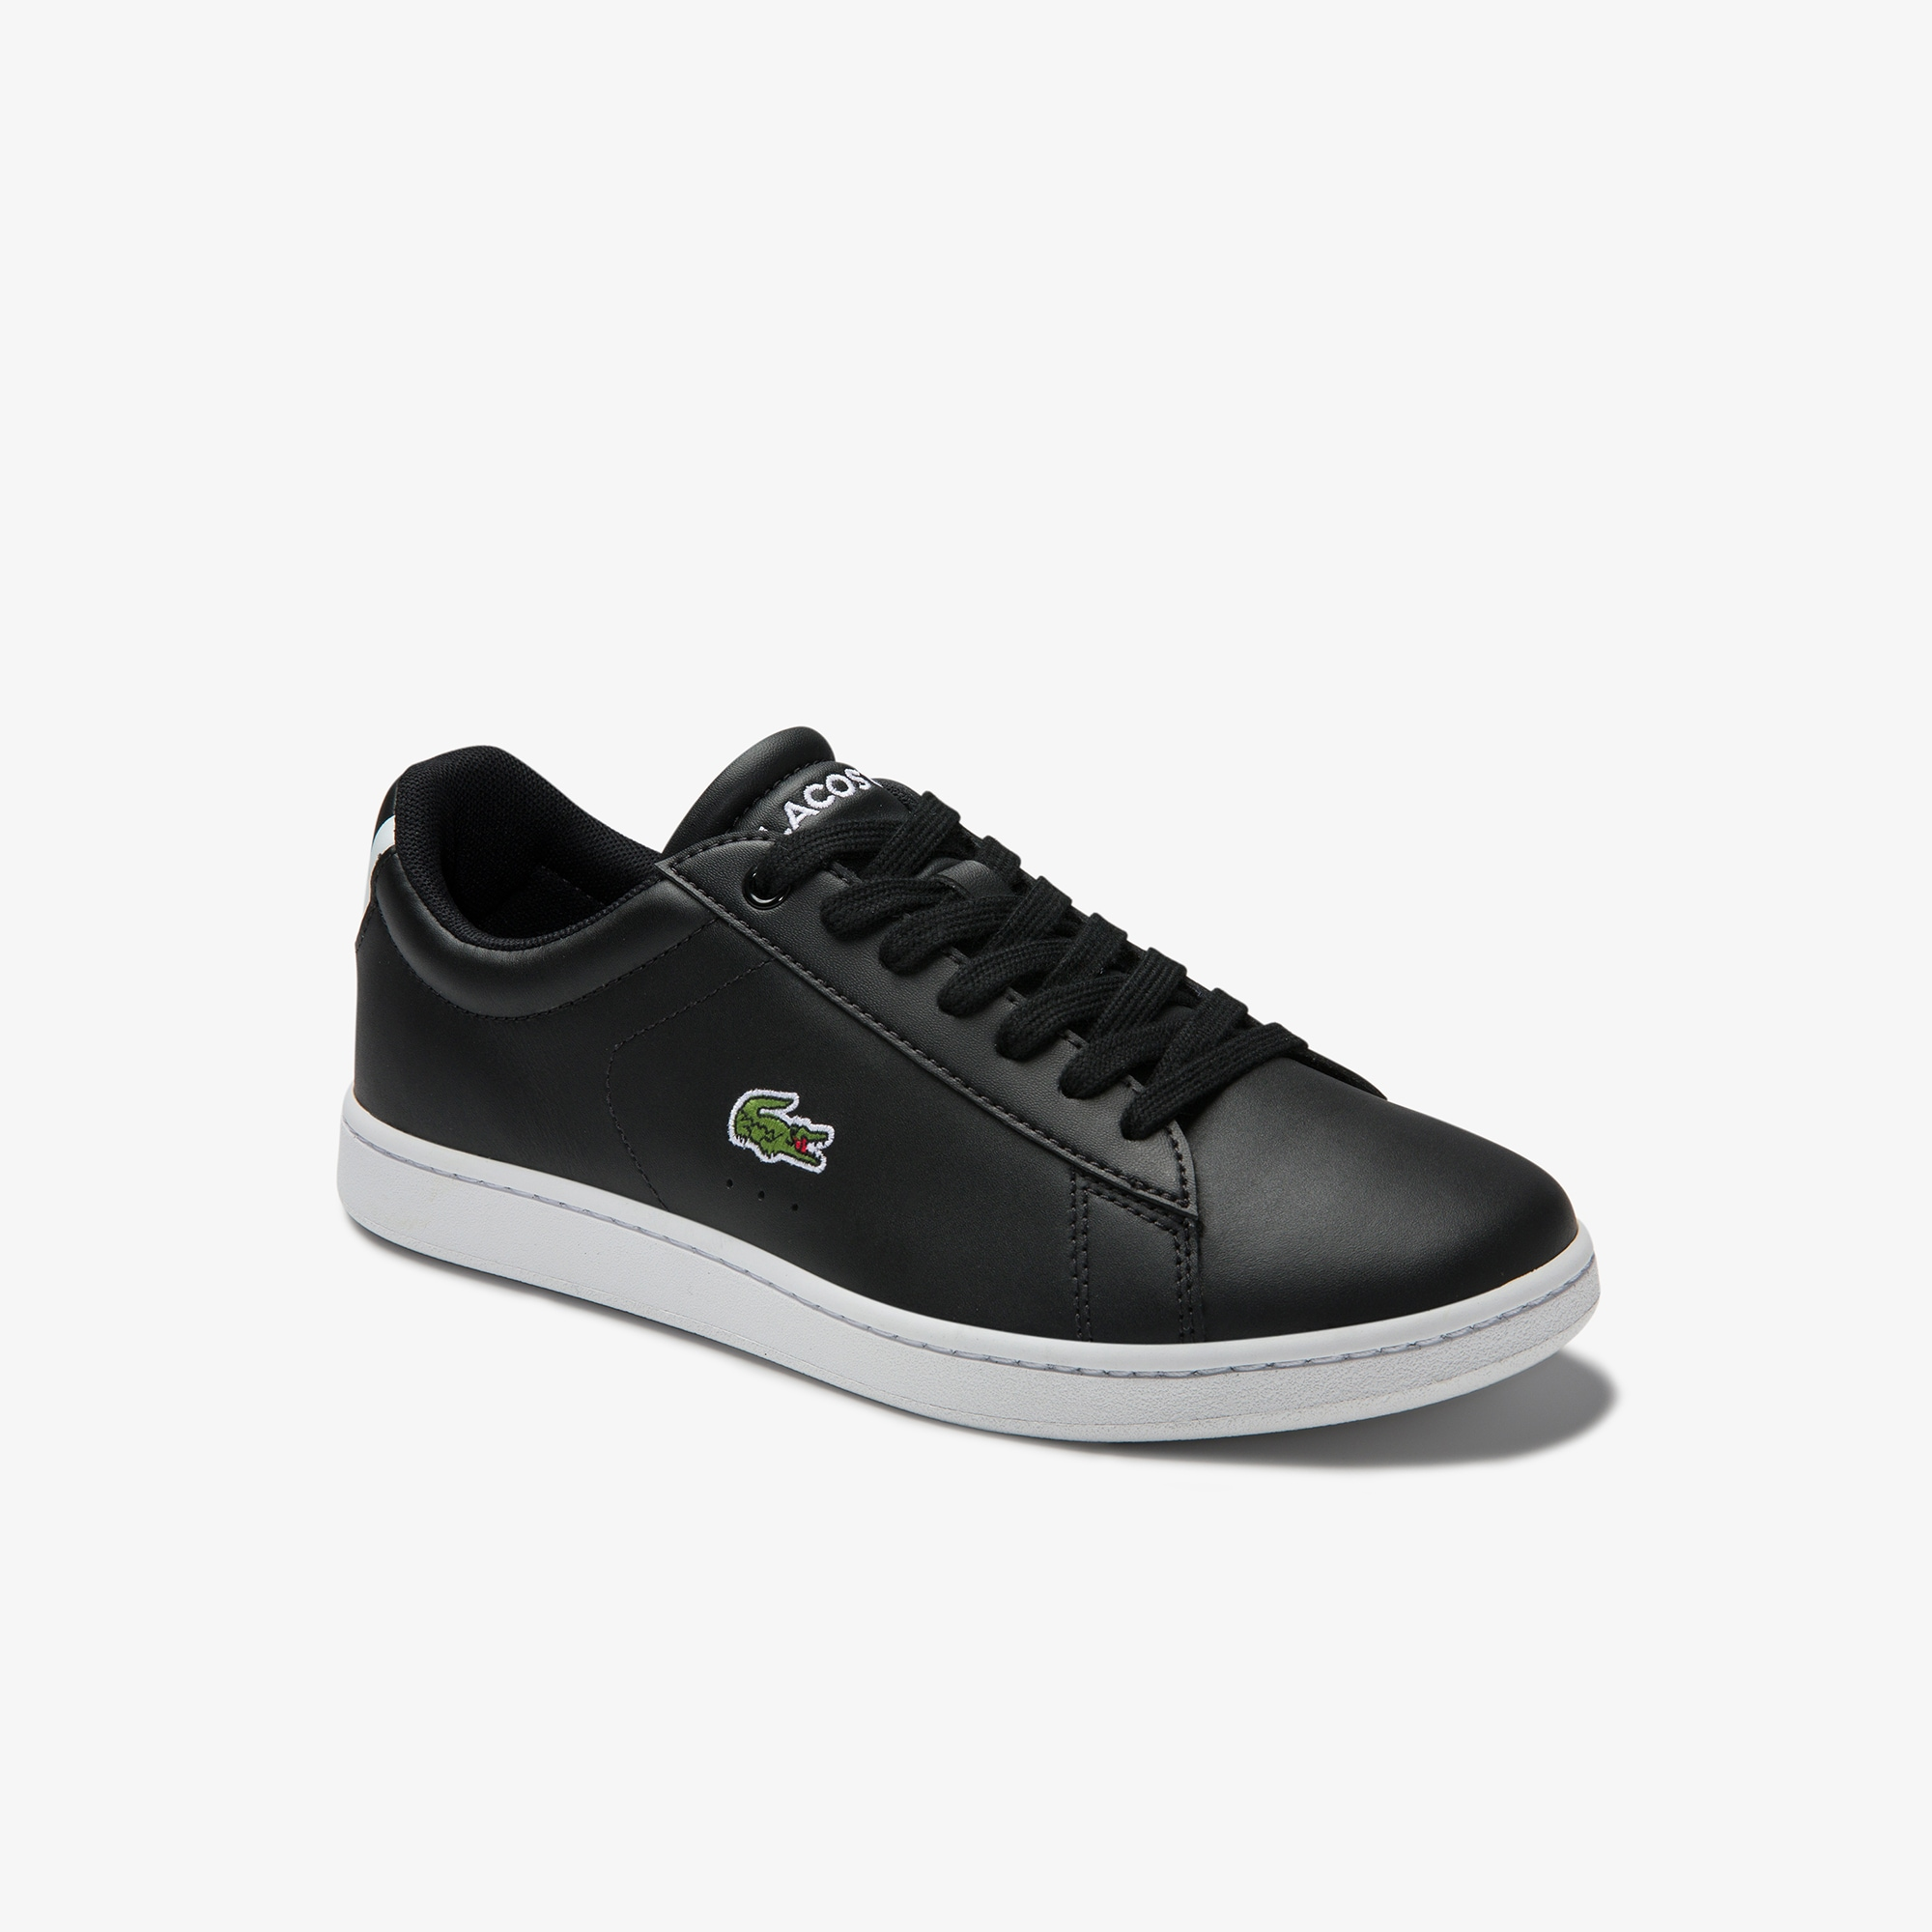 17f97e89673d Shoes for Women | Footwear | LACOSTE